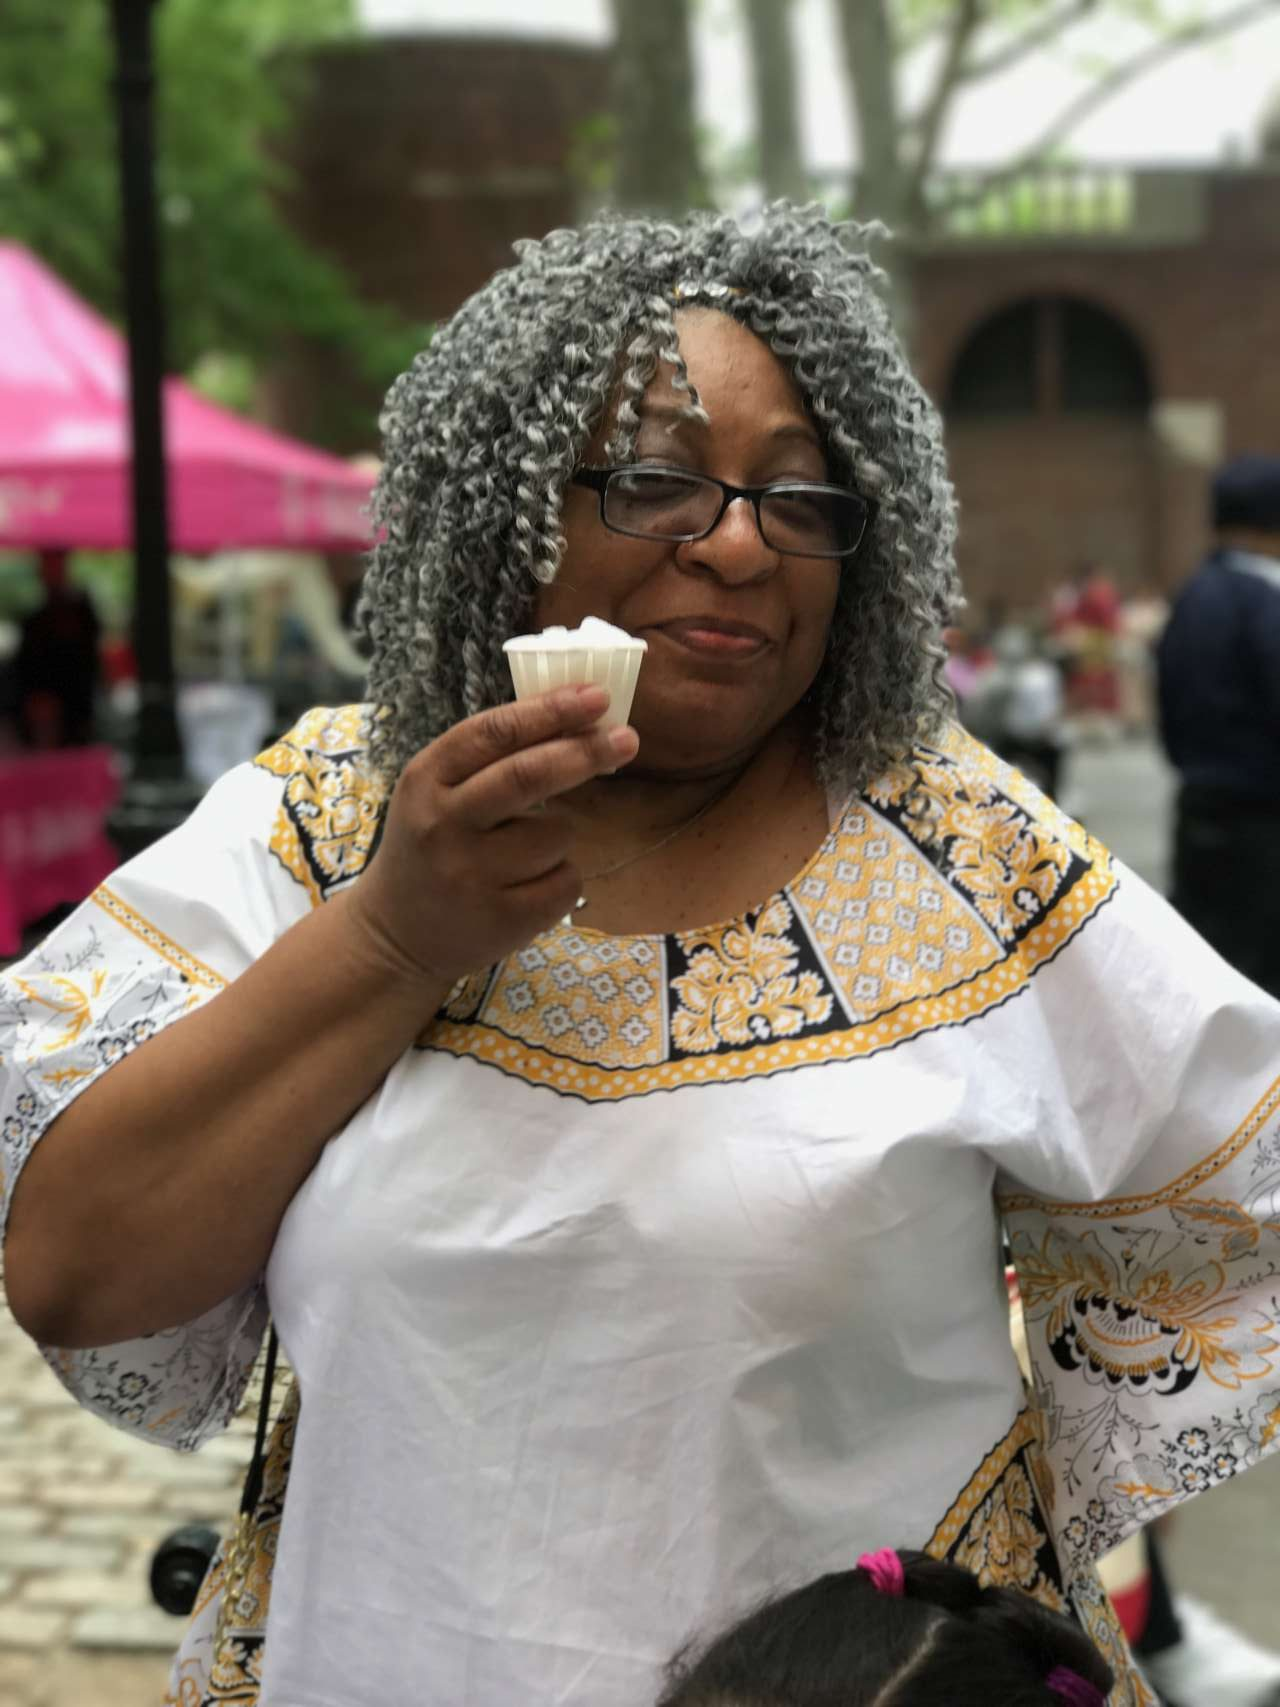 older woman smiling with grey spiral curls in white african dress with gold and black trim smiling and holding lemon italian ice